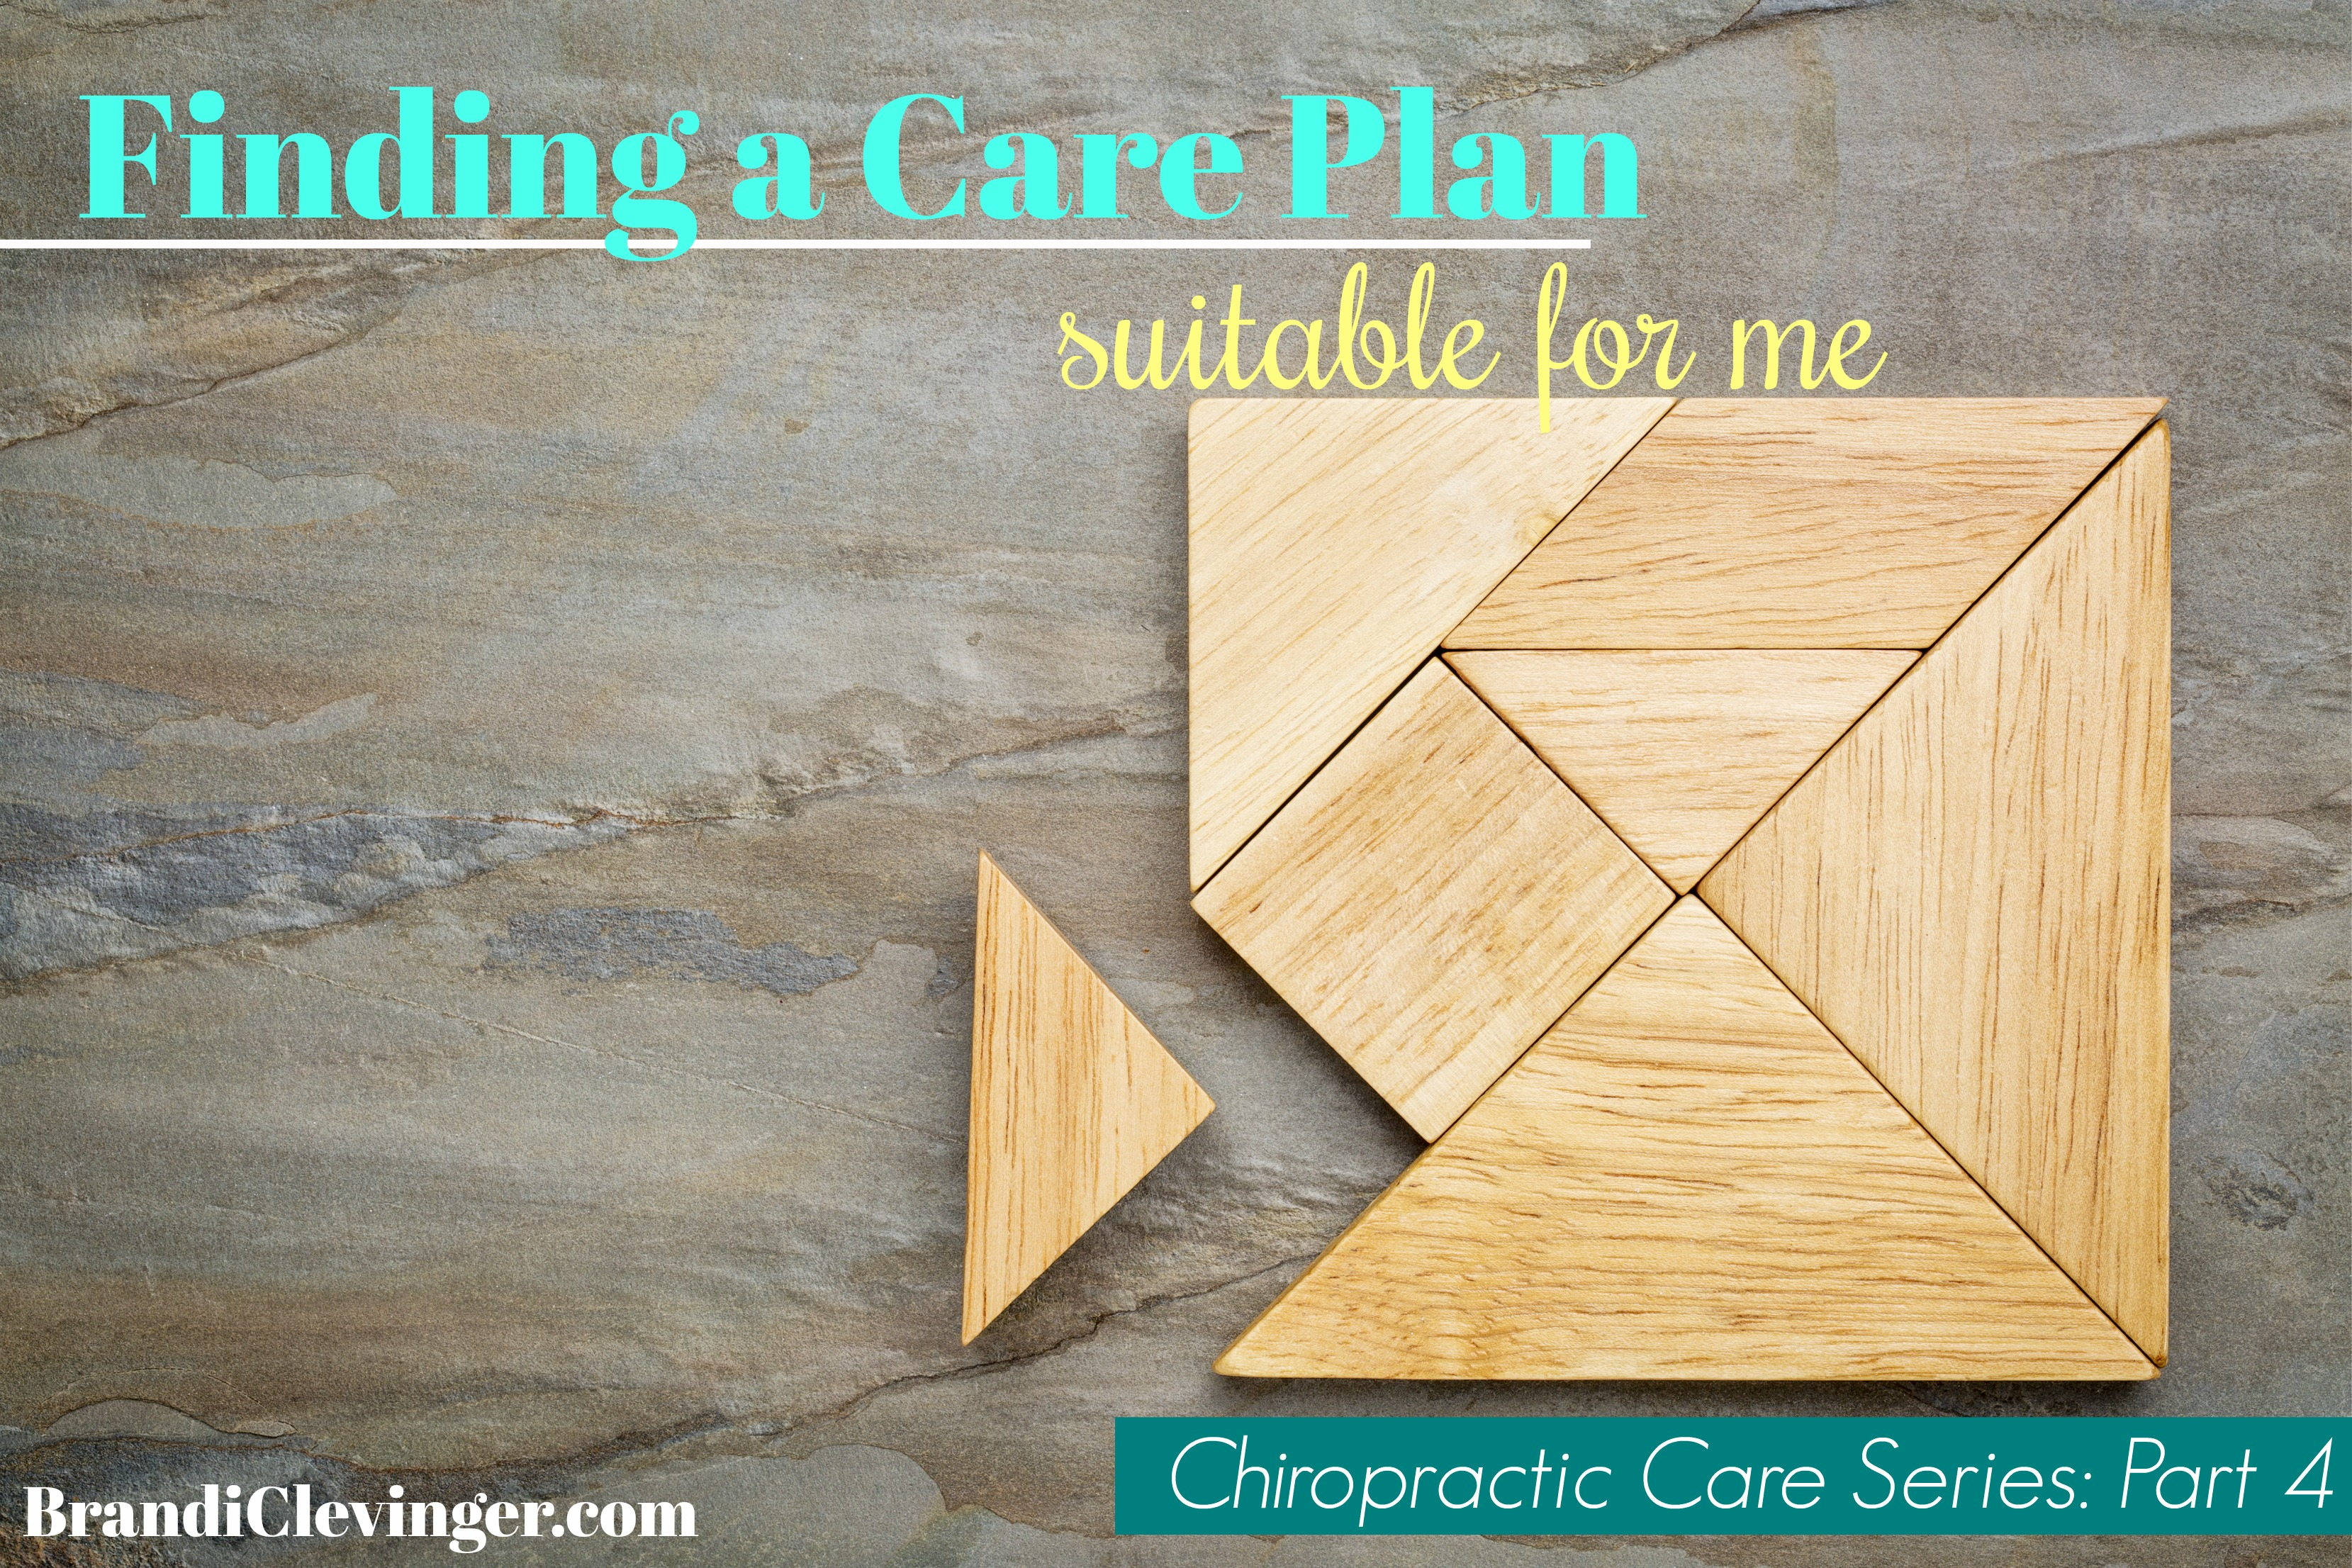 Finding a care plan suitable for me #chiropracticcare #brandiclevinger